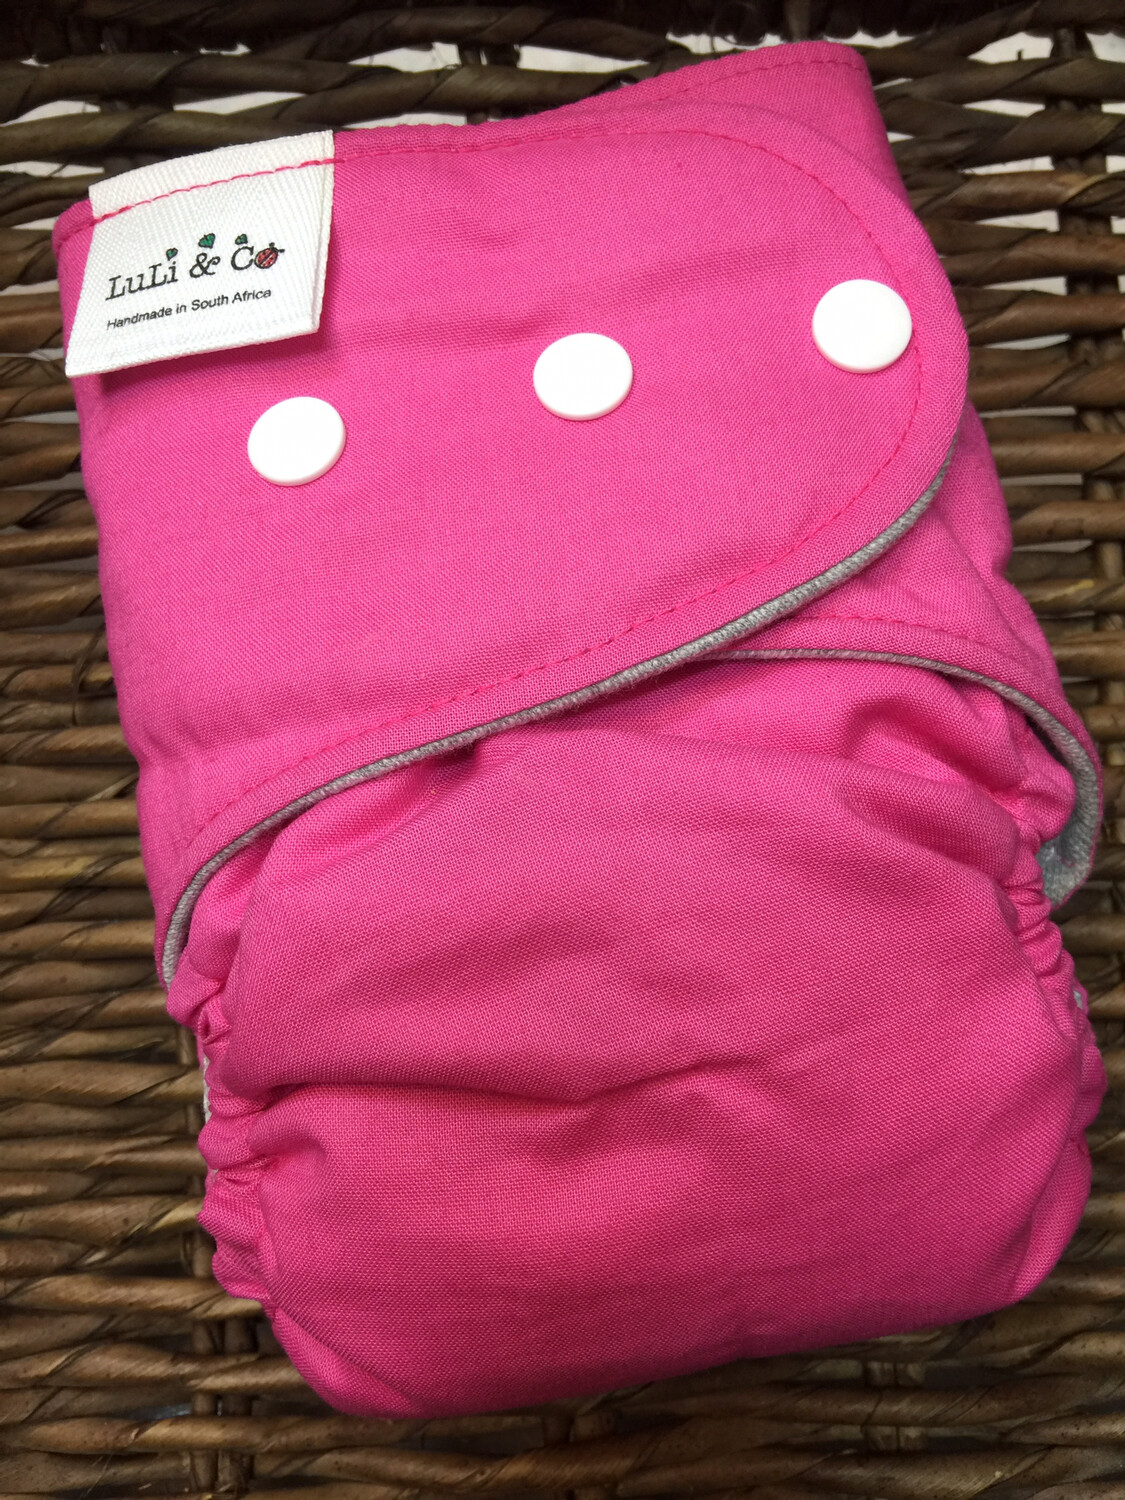 Snap In One-Candy Pink (Petite)